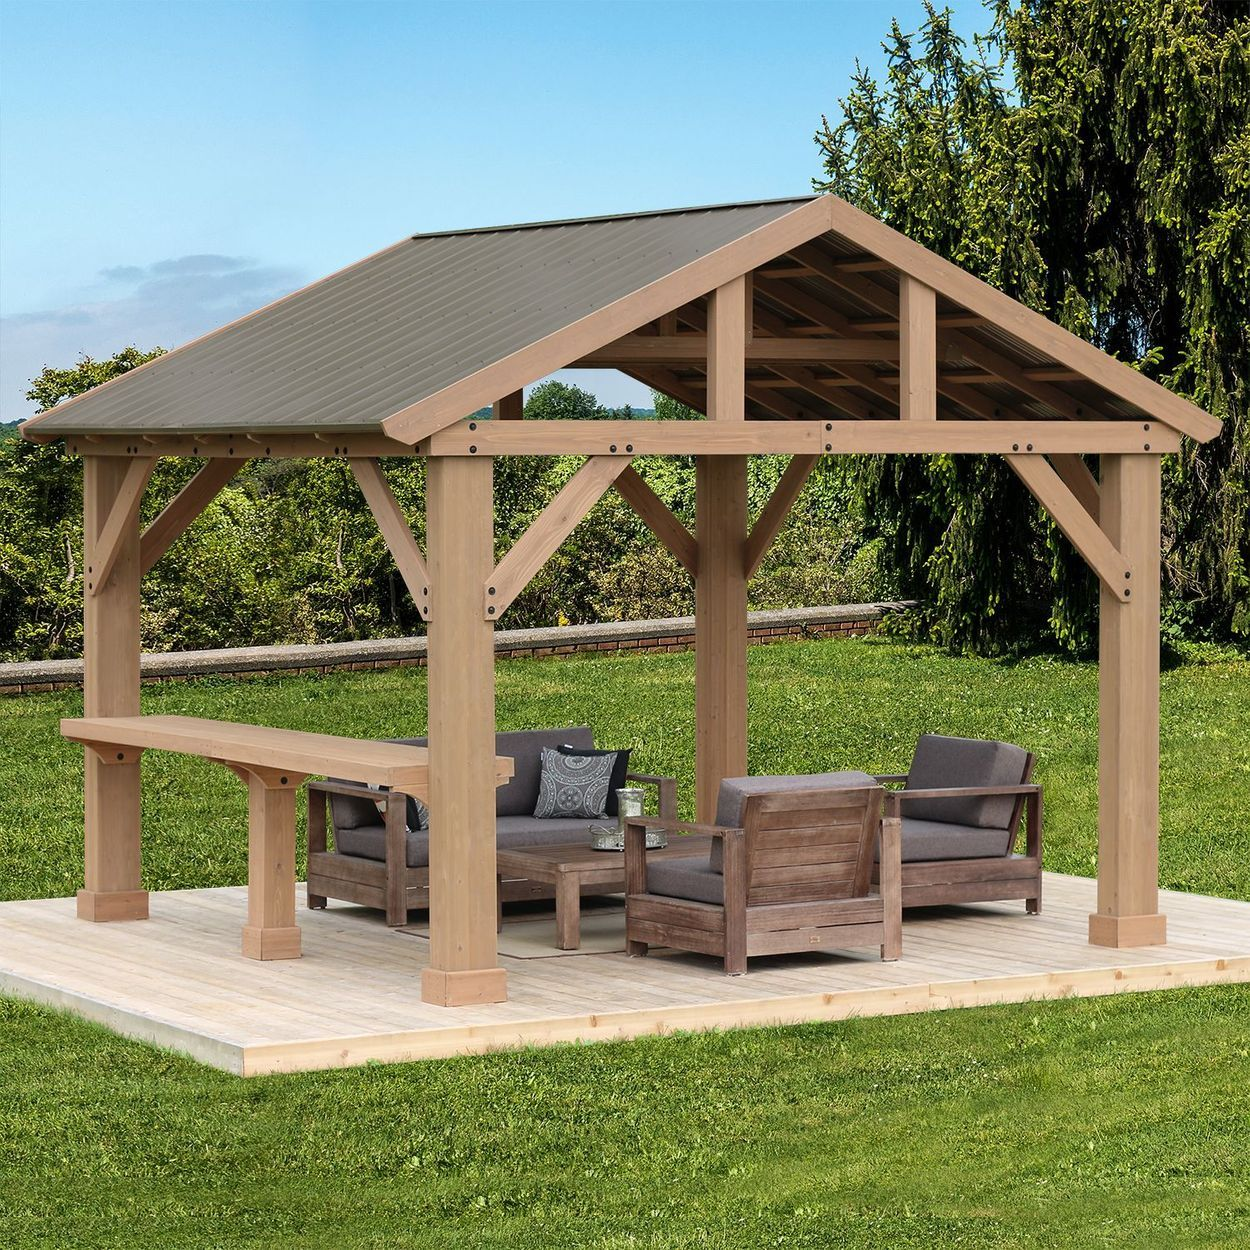 12 Pavilion Bar Counter Backyard Pavilion Patio Gazebo Rustic Pergola